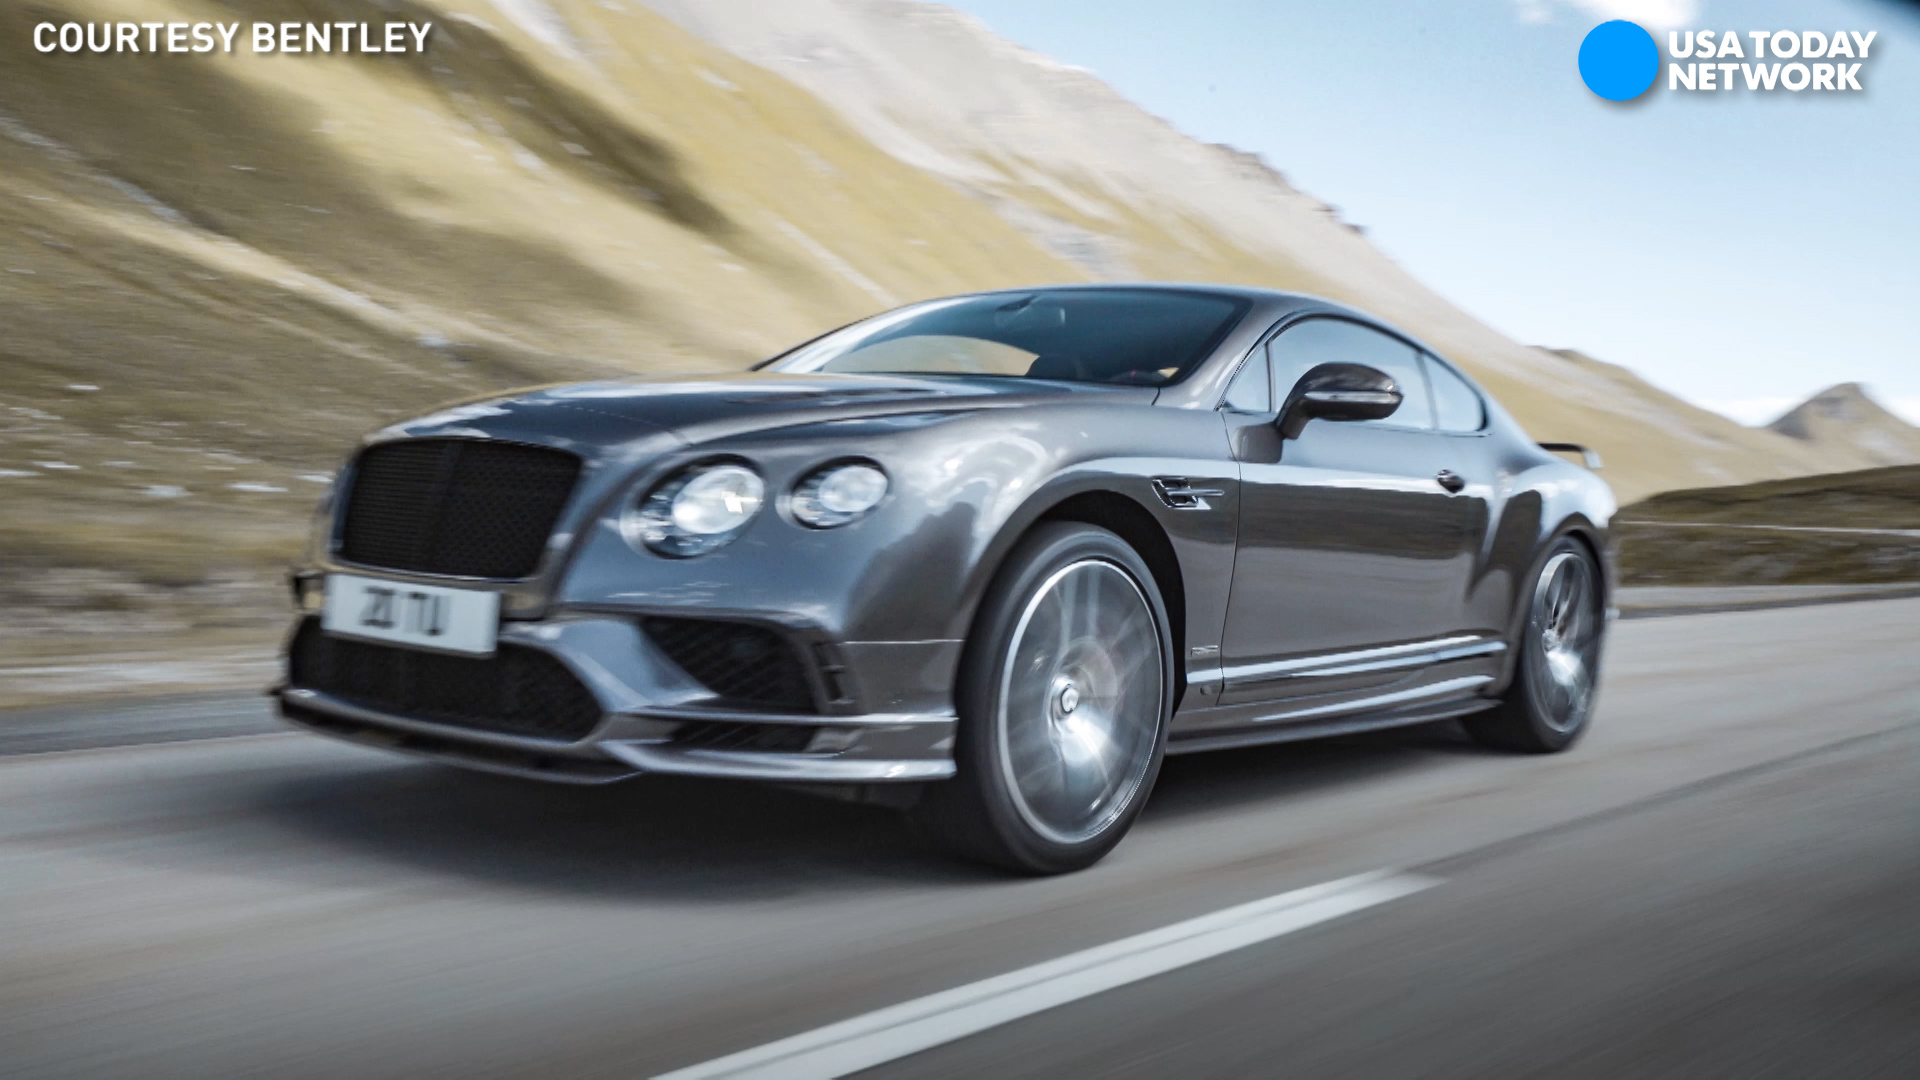 Bentley reveals the jaw-dropping specifications about its luxury Continental Supersports vehicle, debuting at Detroit's North American International Auto Show.